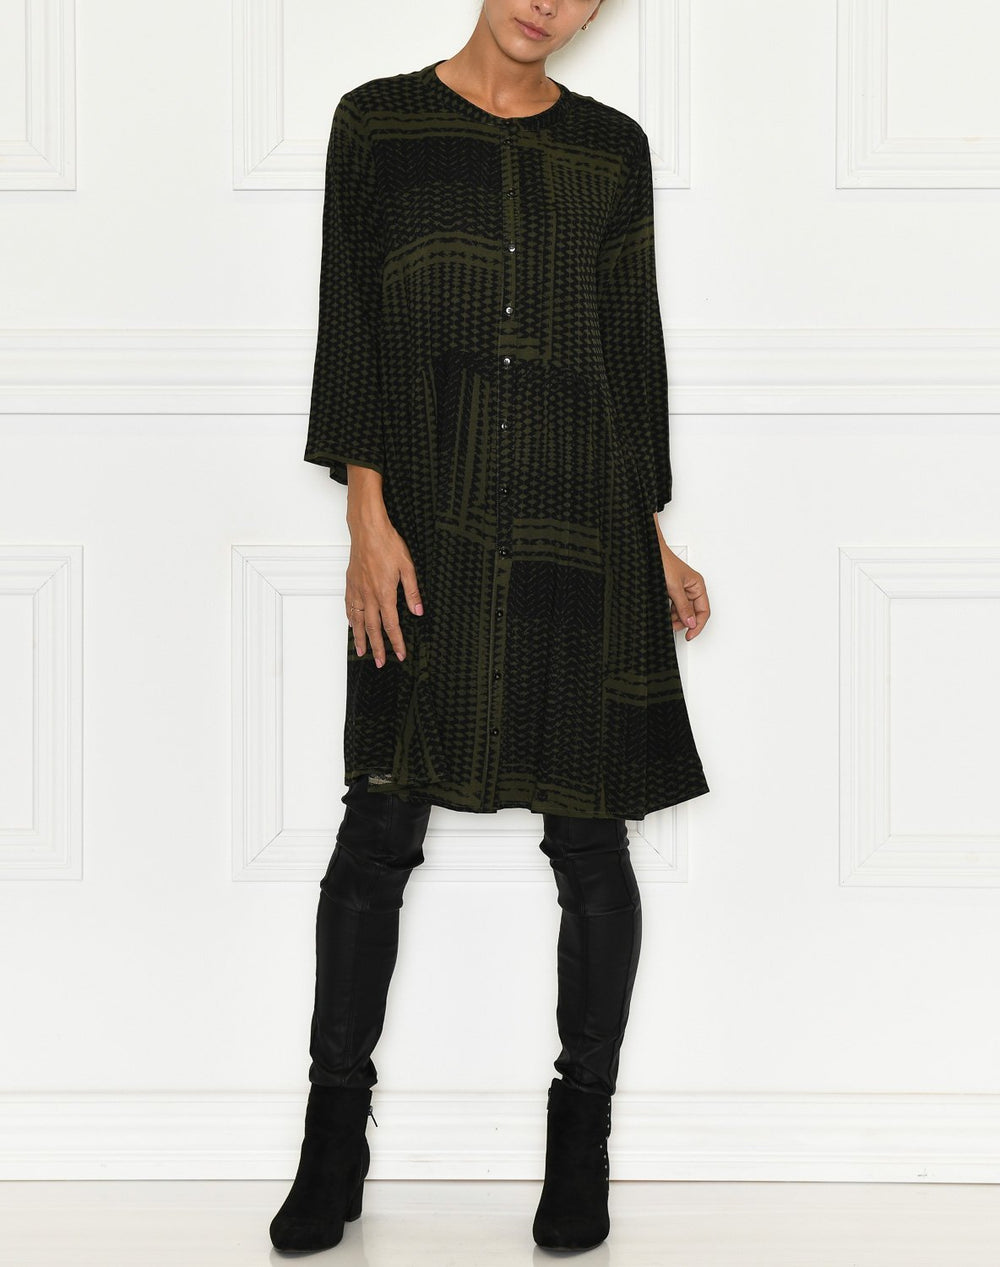 B.Young BYIlla dress olive night combi 4 - Online-Mode